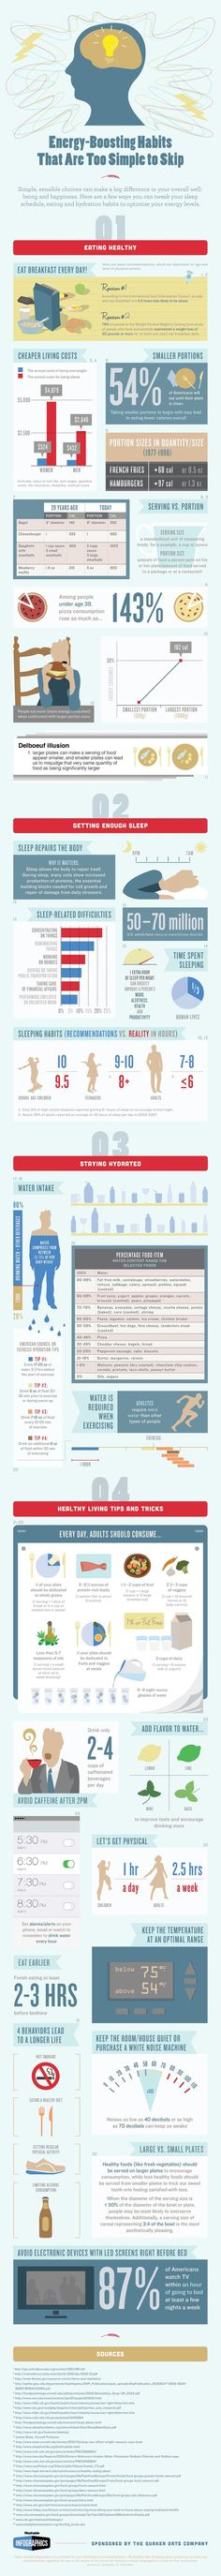 An infographic examining how lifestyle choices like healthy eating, proper hydration and healthy sleep habits can put the bounce back in your step.